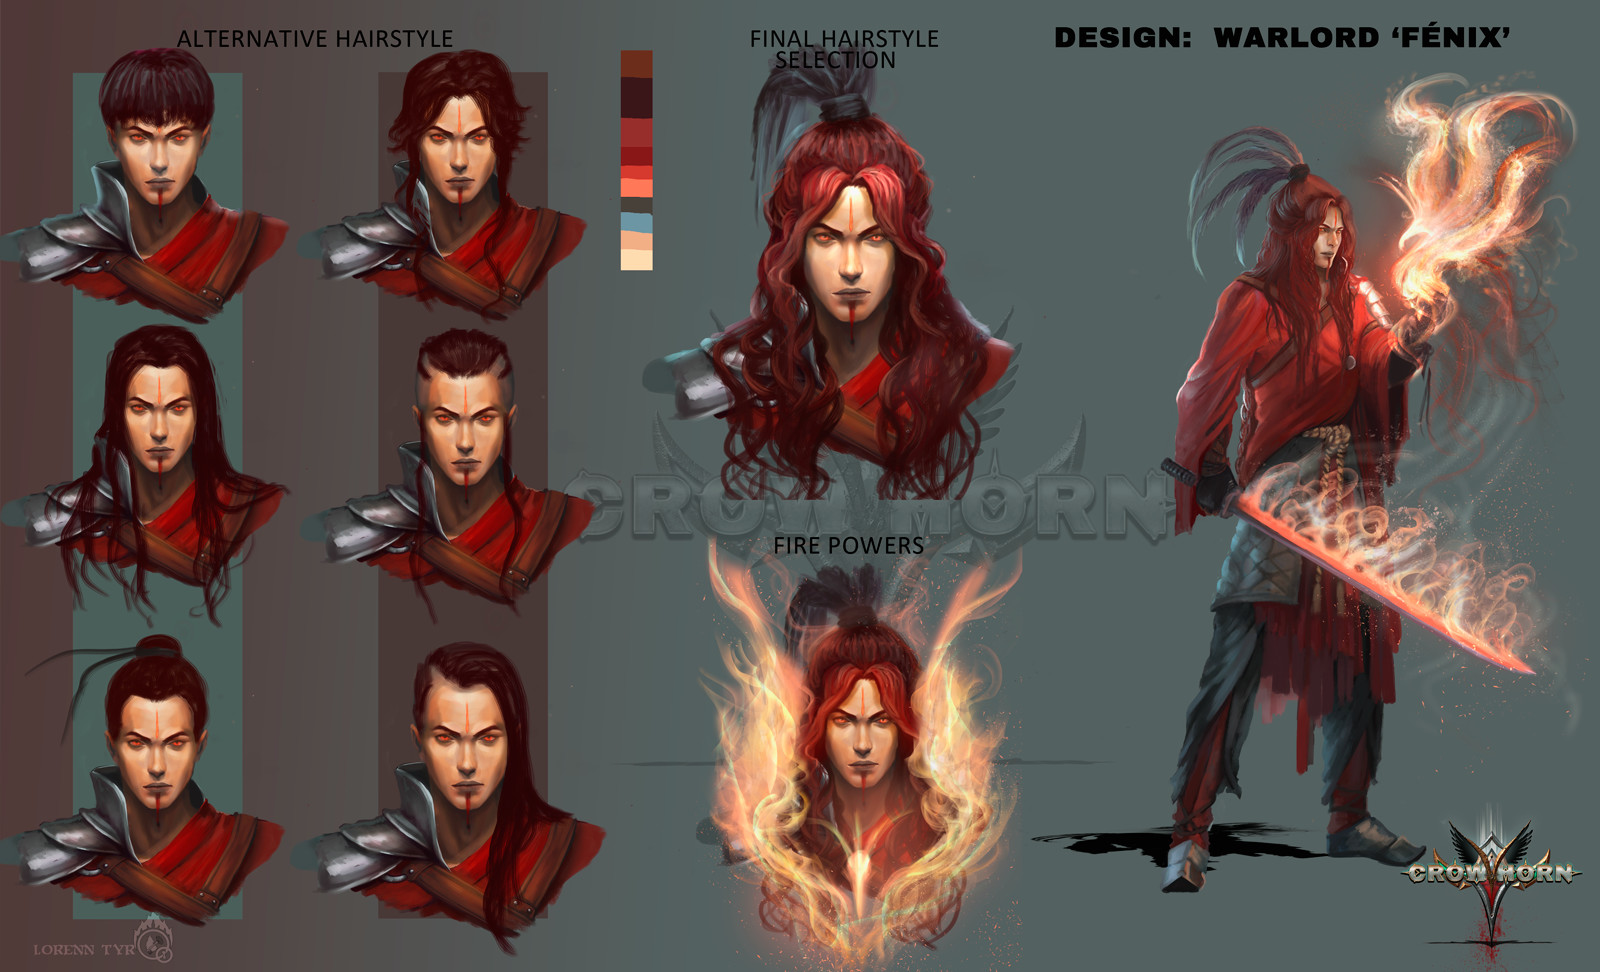 Concept hairstyles, fire powers...